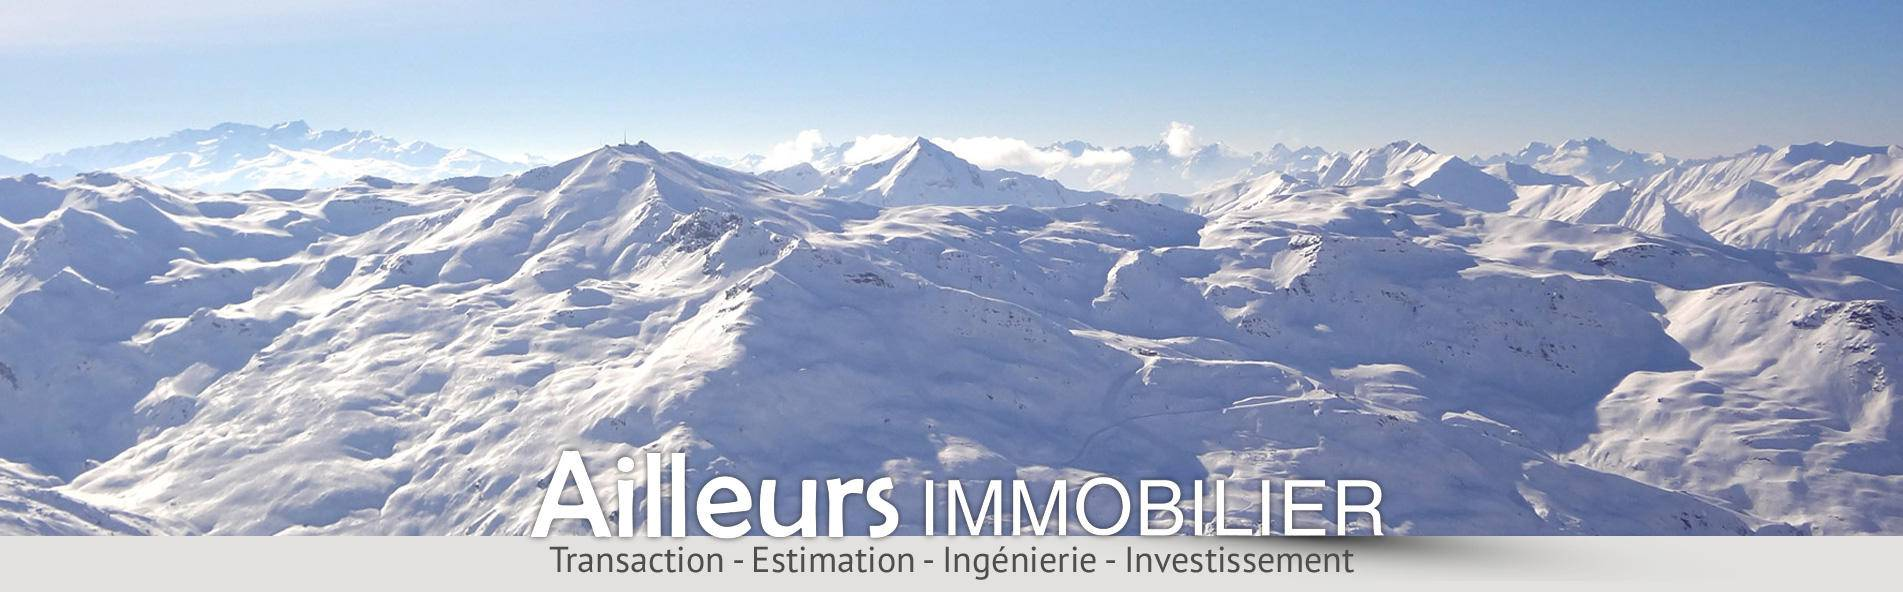 Agence immobili re chamb ry en savoie ailleurs for Terrain chambery